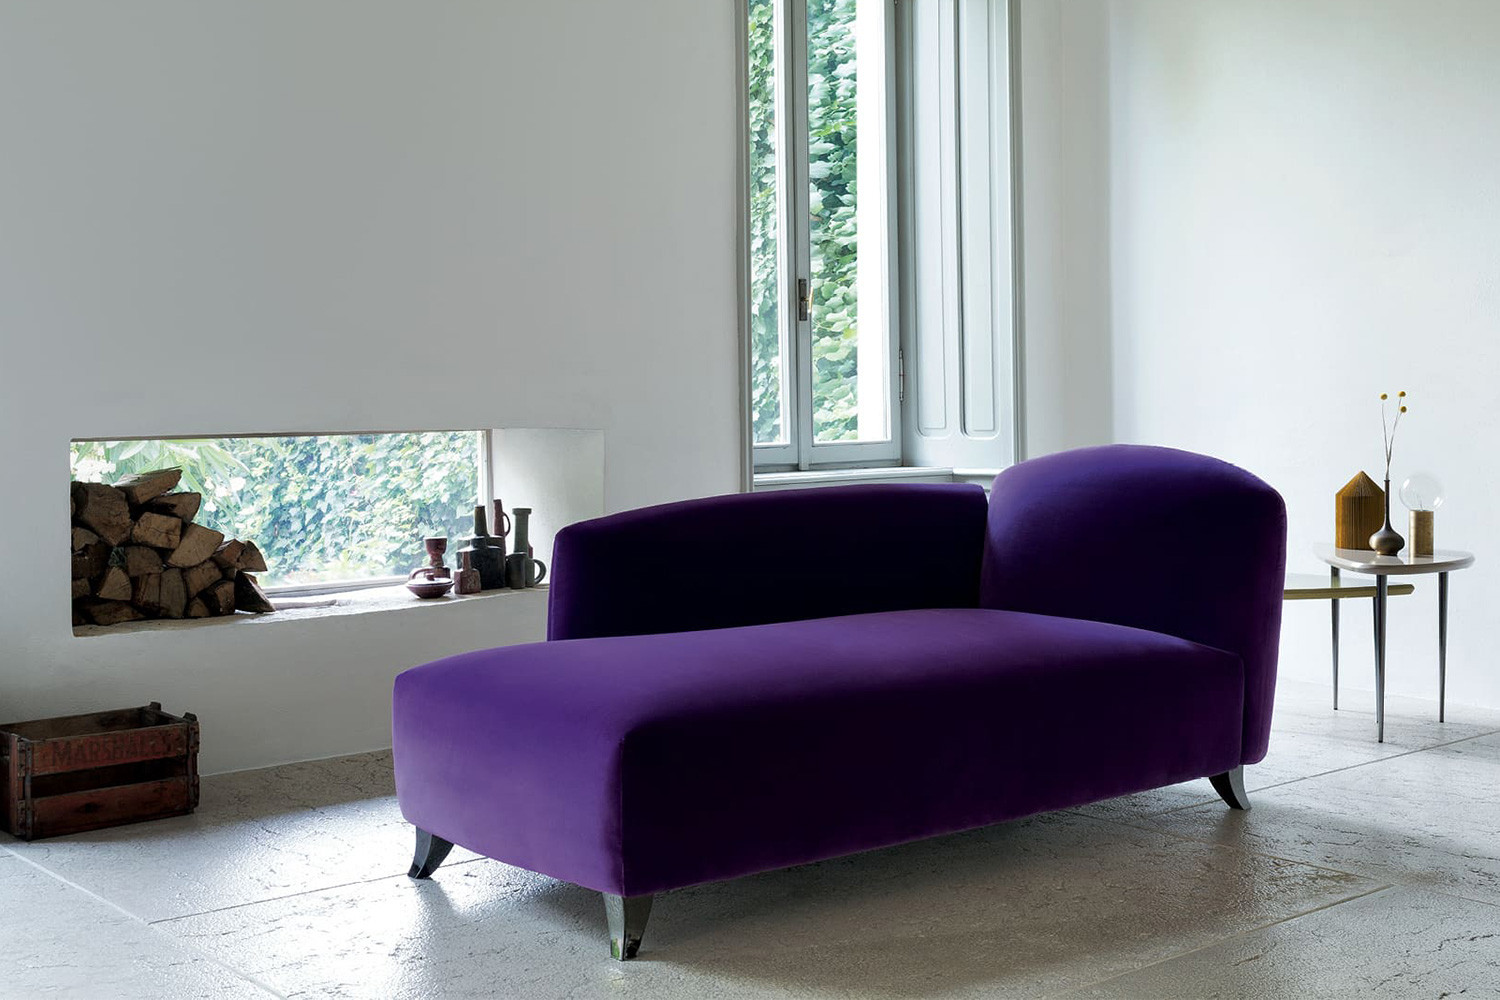 Upholstered fabric or velvet loveseat chaise lounge with wood or chrome saber legs